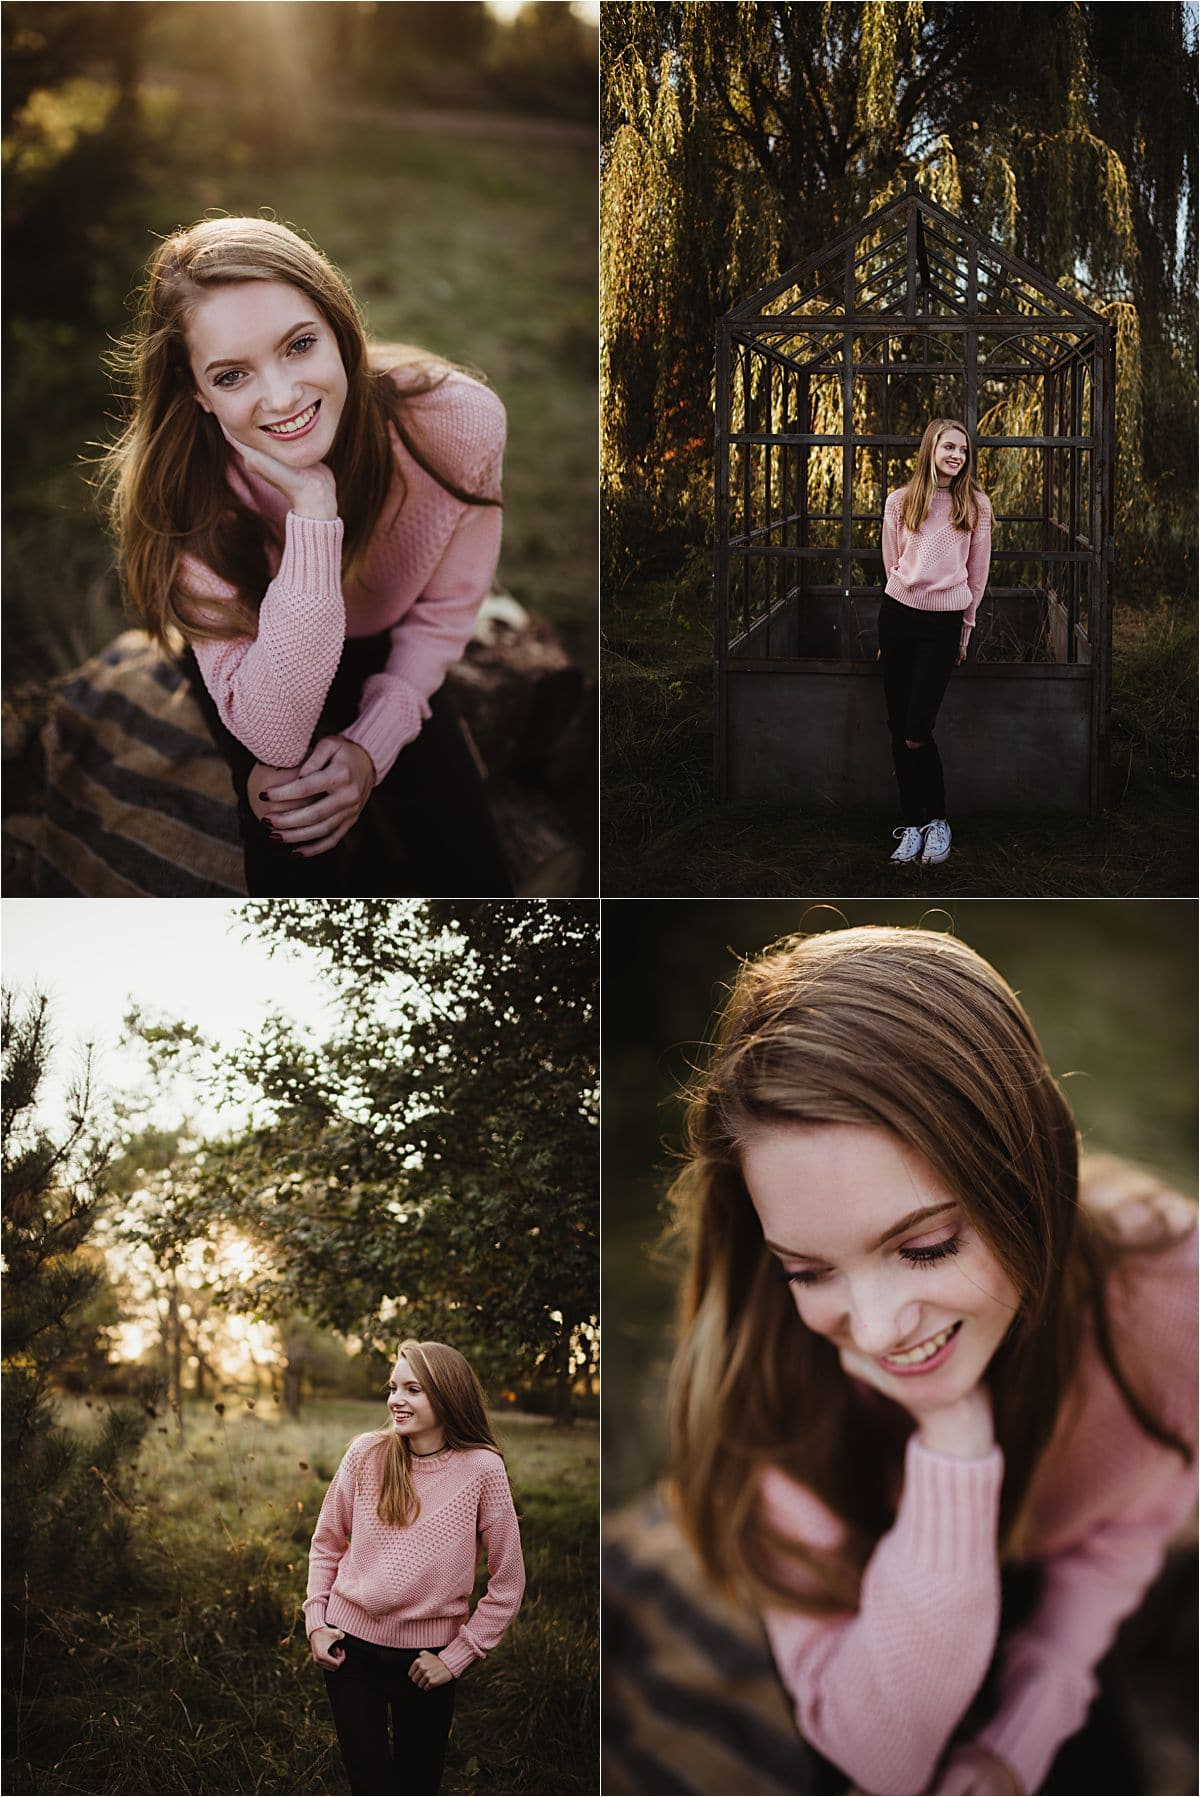 Senior Girl in Pink Sweater Outside